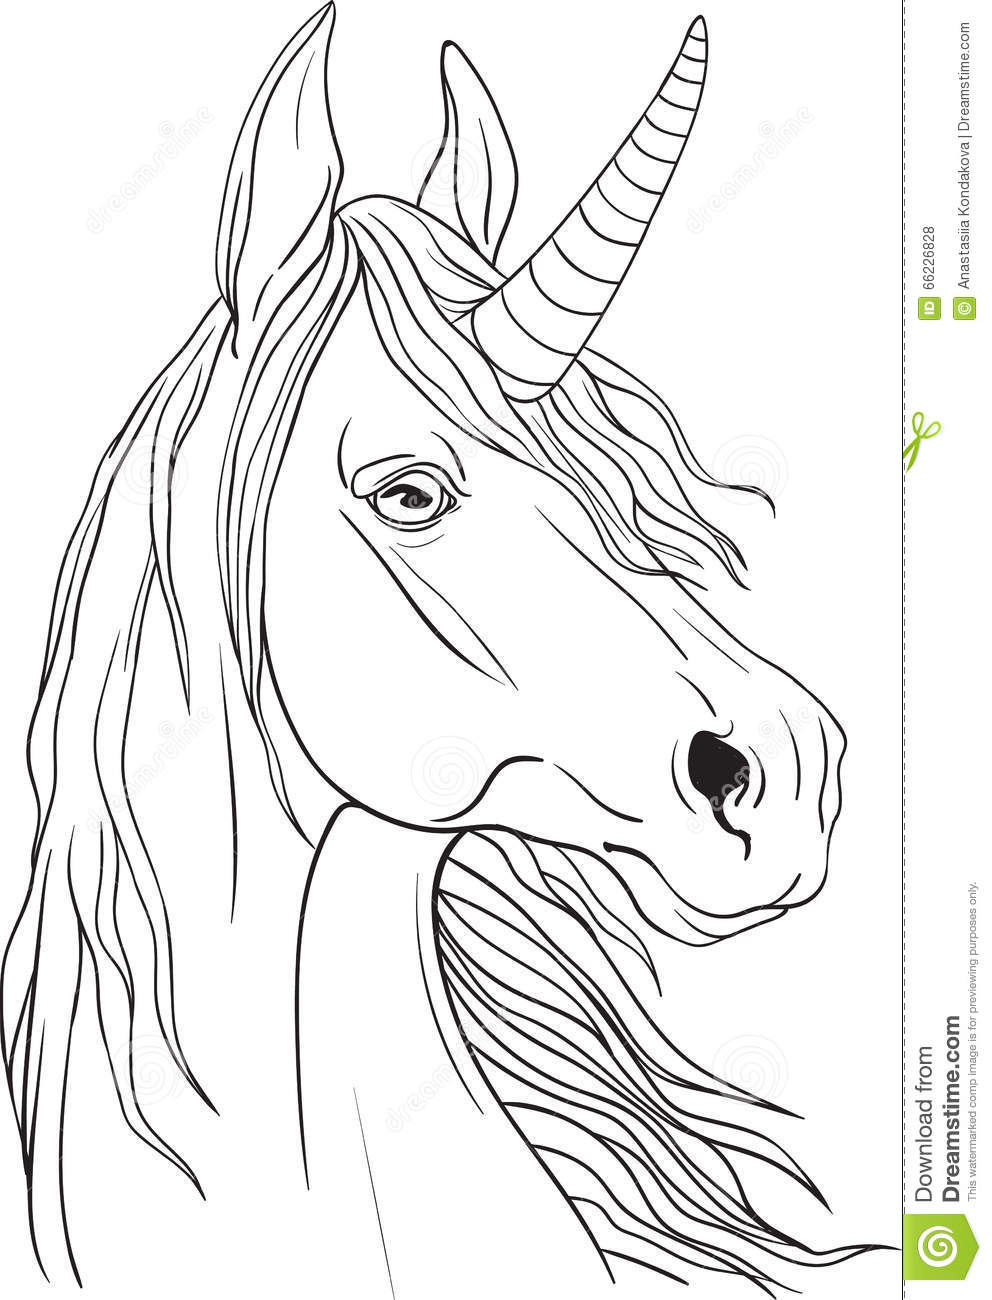 Coloring Page With Unicorns Portrait Stock Vector - Illustration of ...